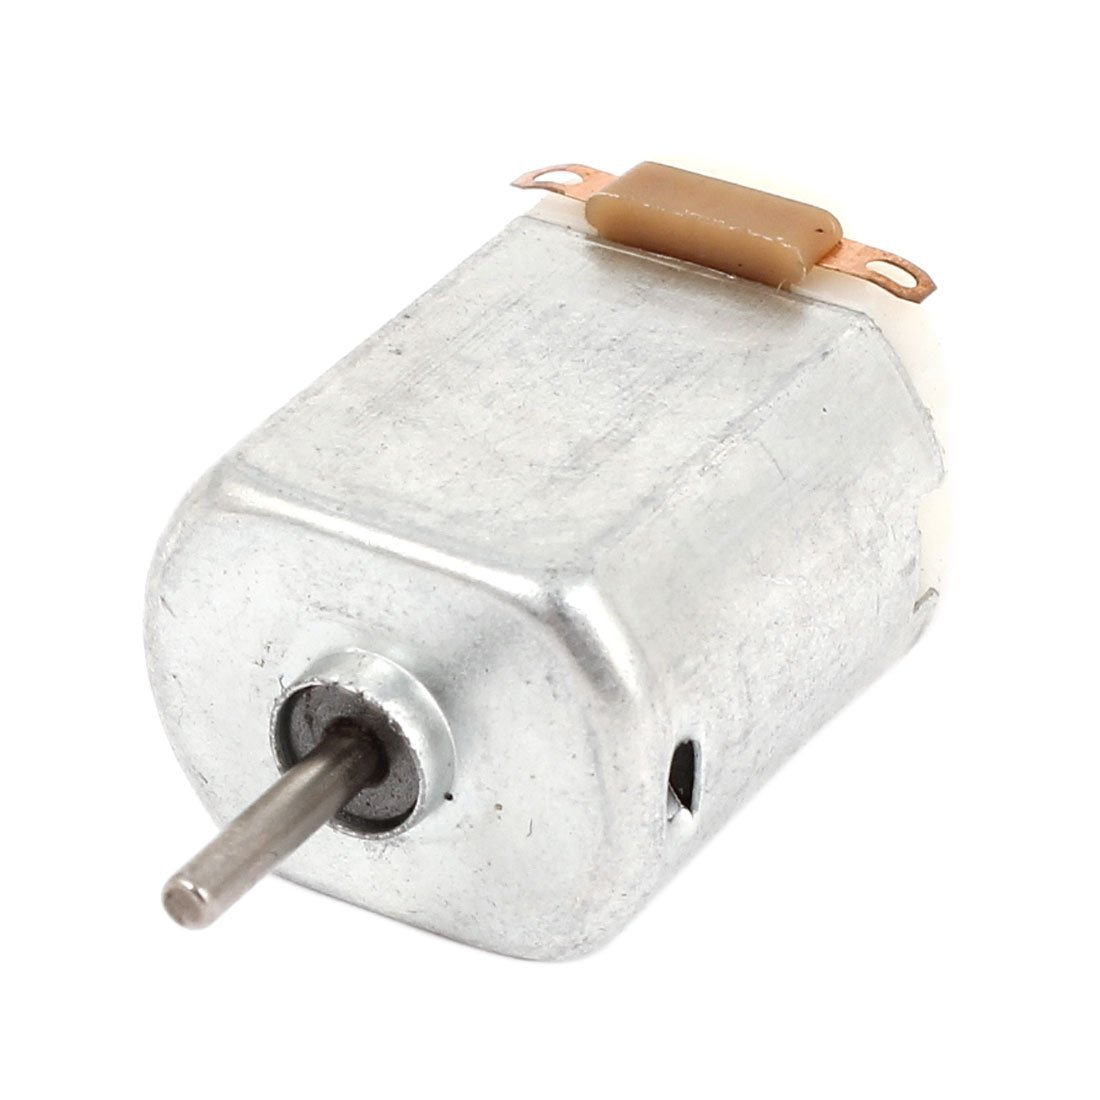 Diy Toy Hobby Quell Summer Thirst 3v Mini Electric Motor 18000 Rpm Dc 1.5v